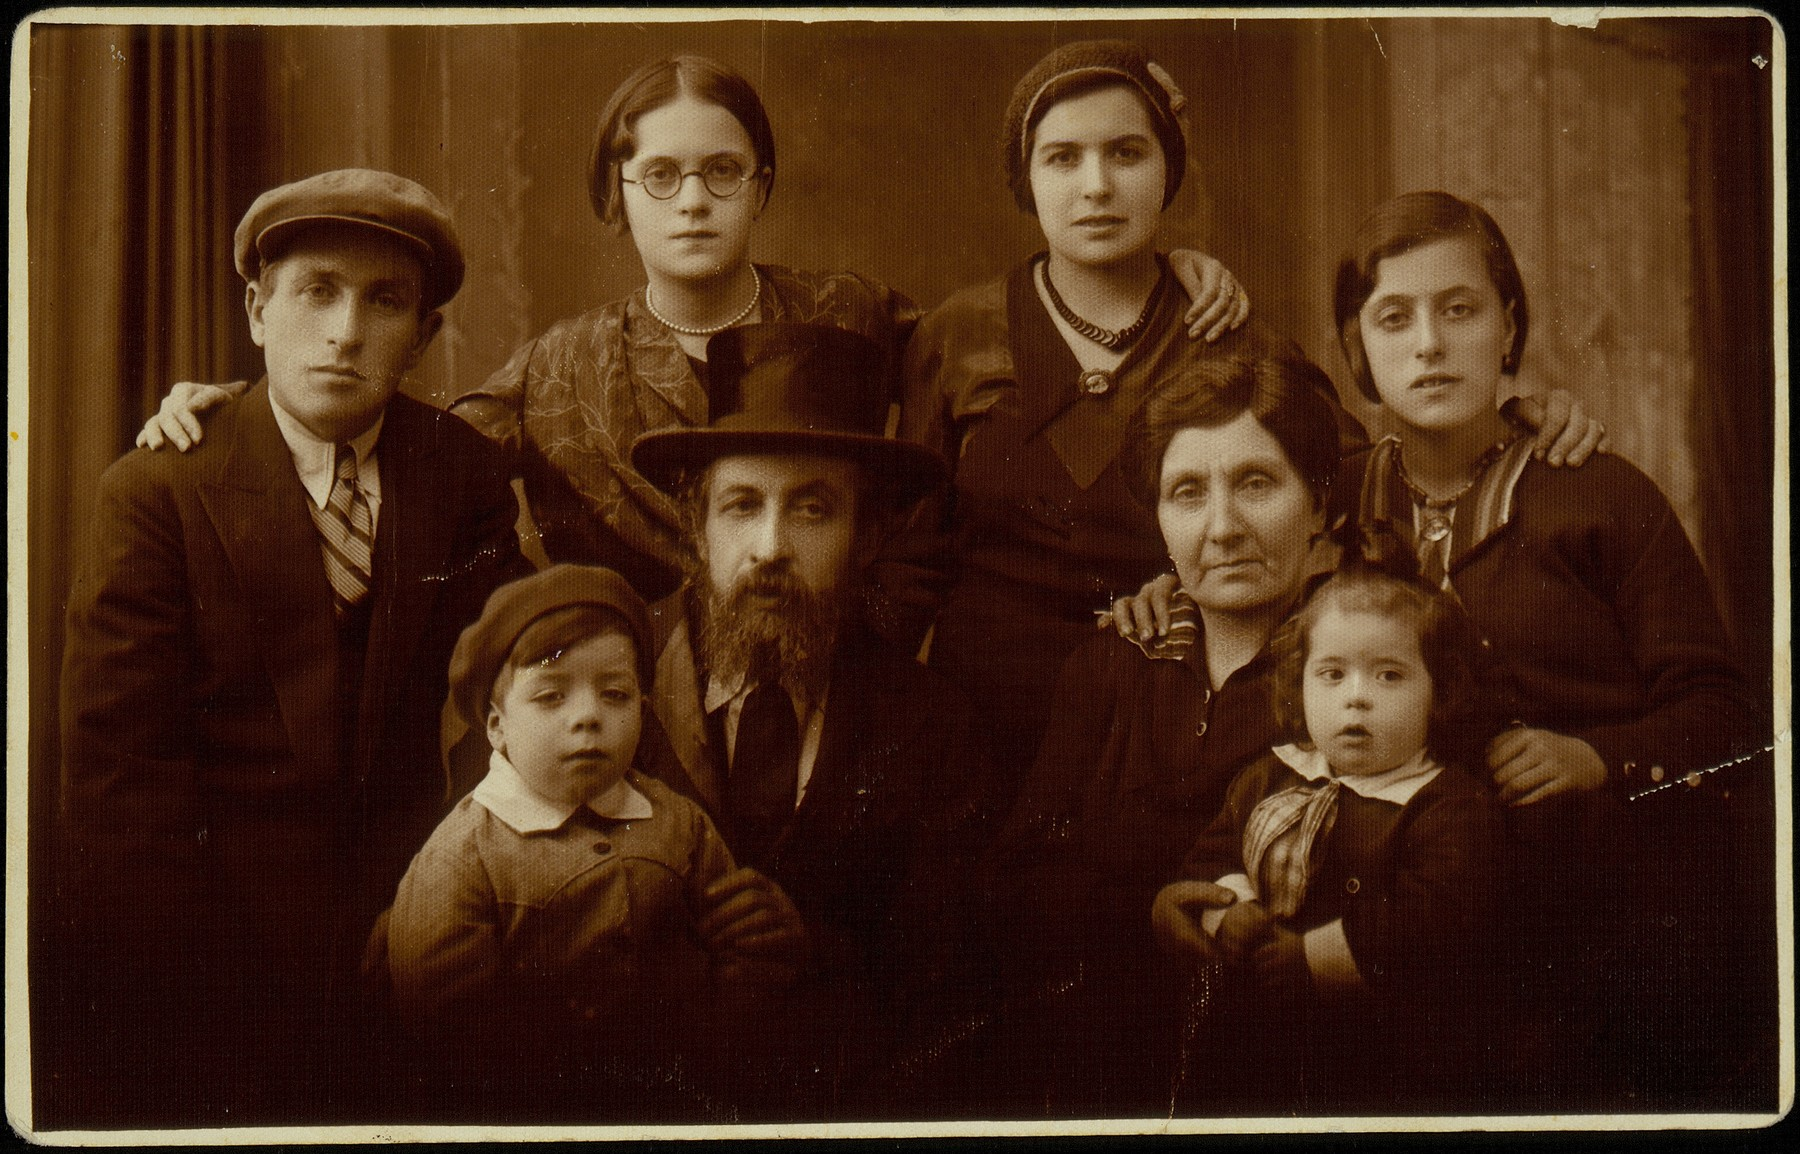 Family of Rabbi Naftali Menahem Hutner, the shtetl judge.   Pictured are Rabbi Naftali Hertz Hutner and his wife Kreina Golde, their children Shimon, Tzippora, Shoshana, Zivia Hutner Hadash and grandchildren Shulamit and Aharon Hadash.  The photograph was taken in honor of the visit of Zivia and her two children from Palestine.  Rabbi Hutner died in October 1934, and the following year his widow immigrated to Palestine with her three other children.